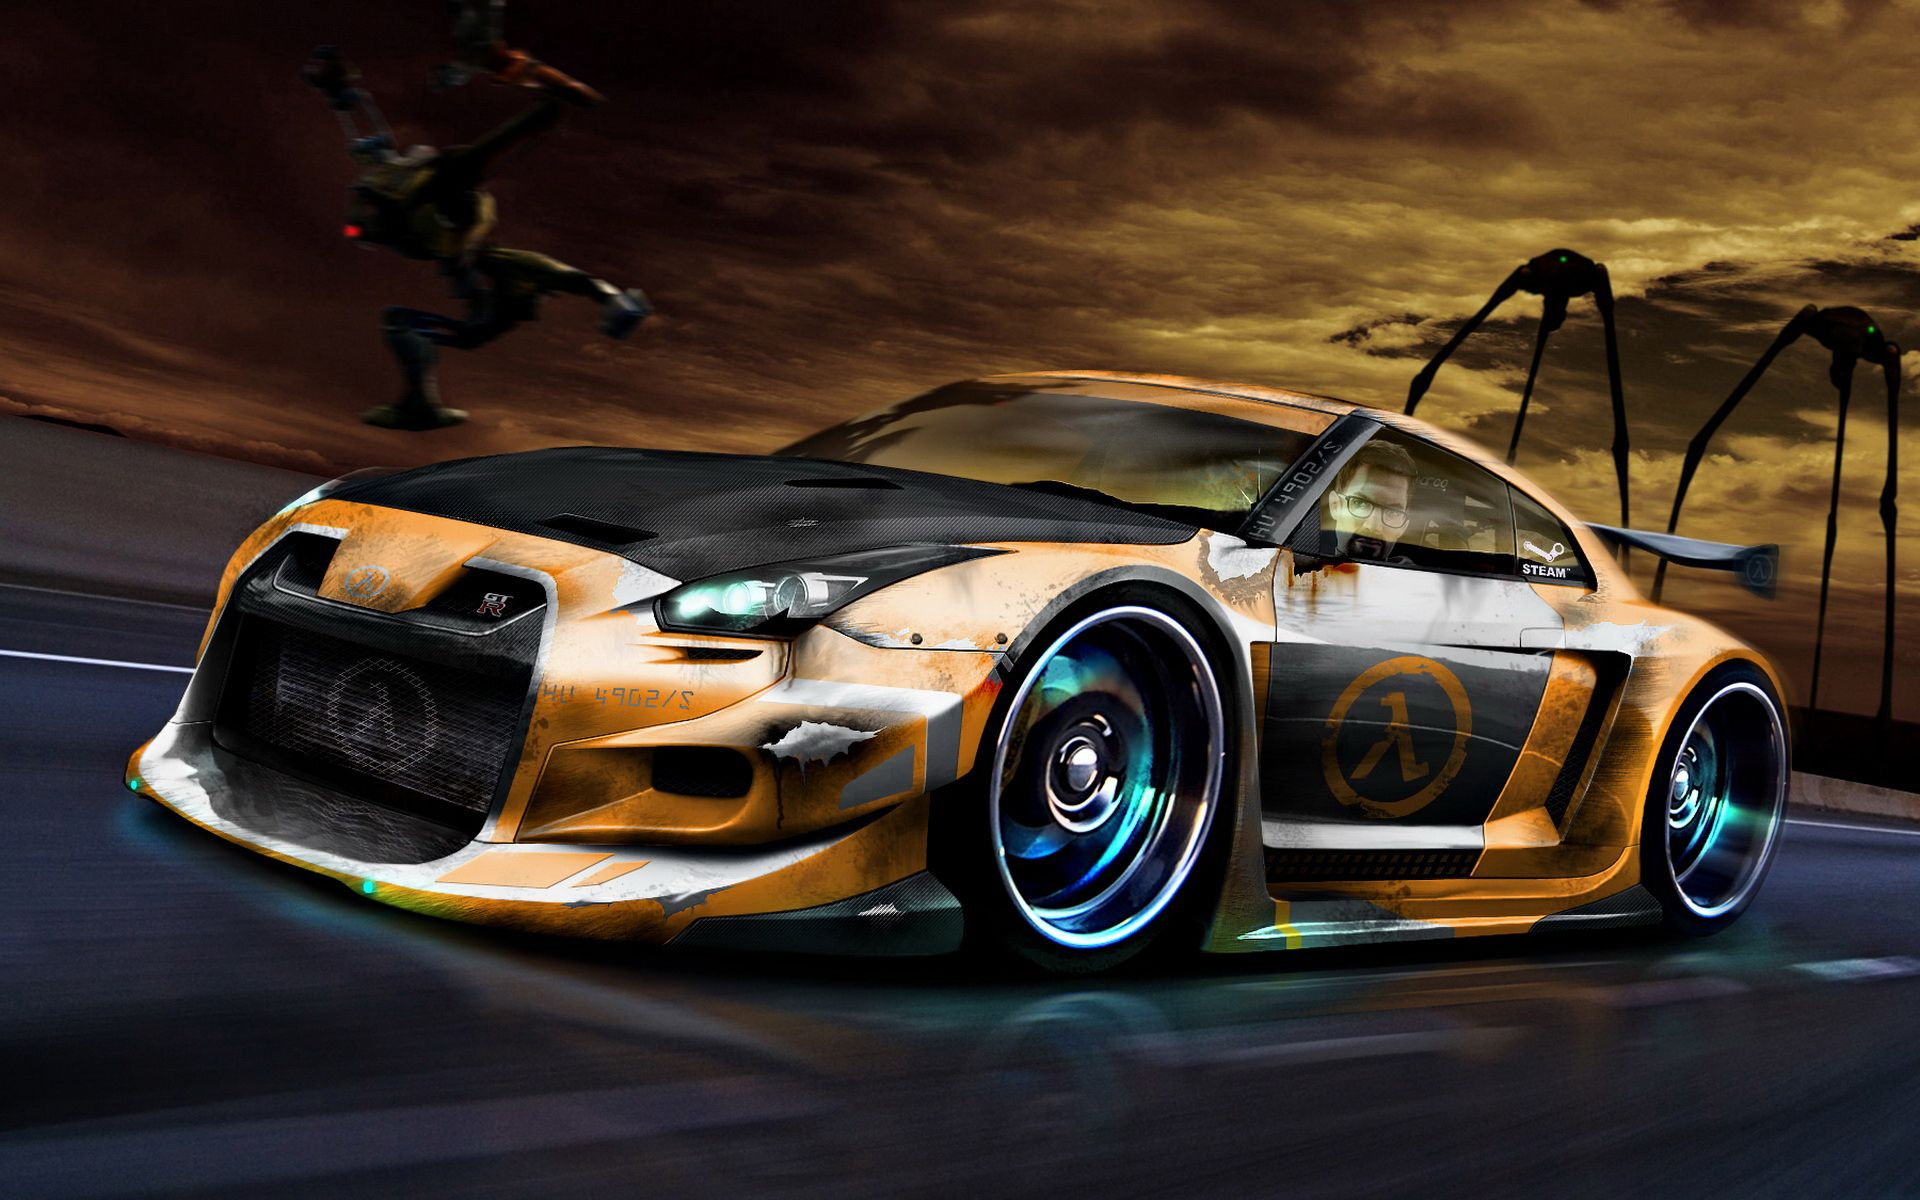 Amazing Street Racing Car Pics | Cool Sports Car Wallpaper Auto Desktop Background